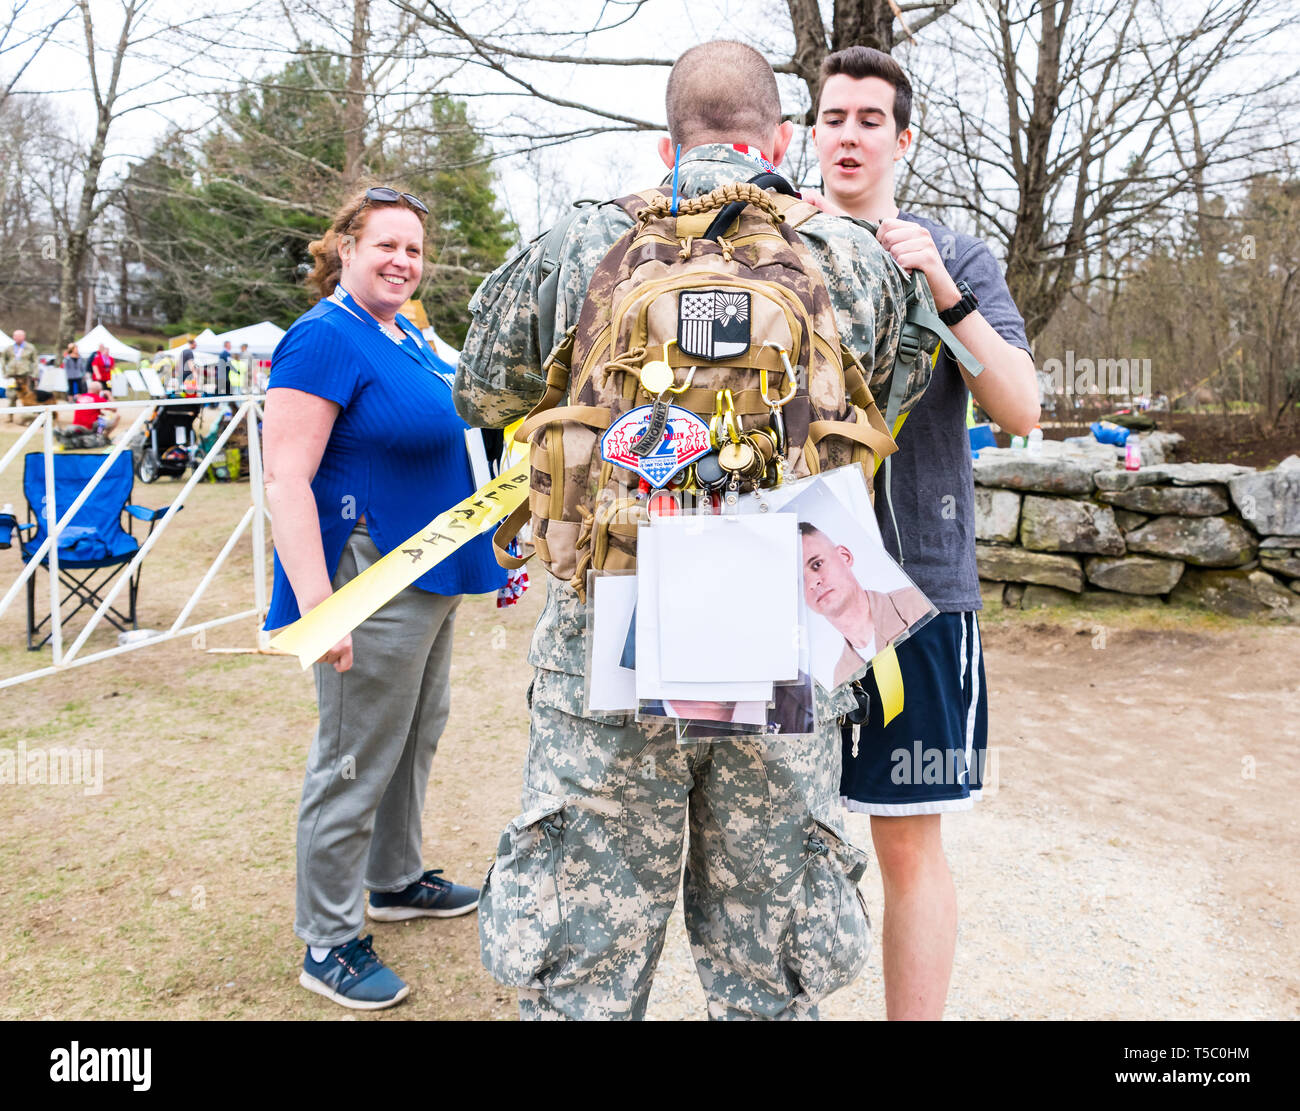 Soldier participating in the Tough Ruck, who crossed the marathon finish line carrying not only his ruck sack but also one belonging to another. - Stock Image